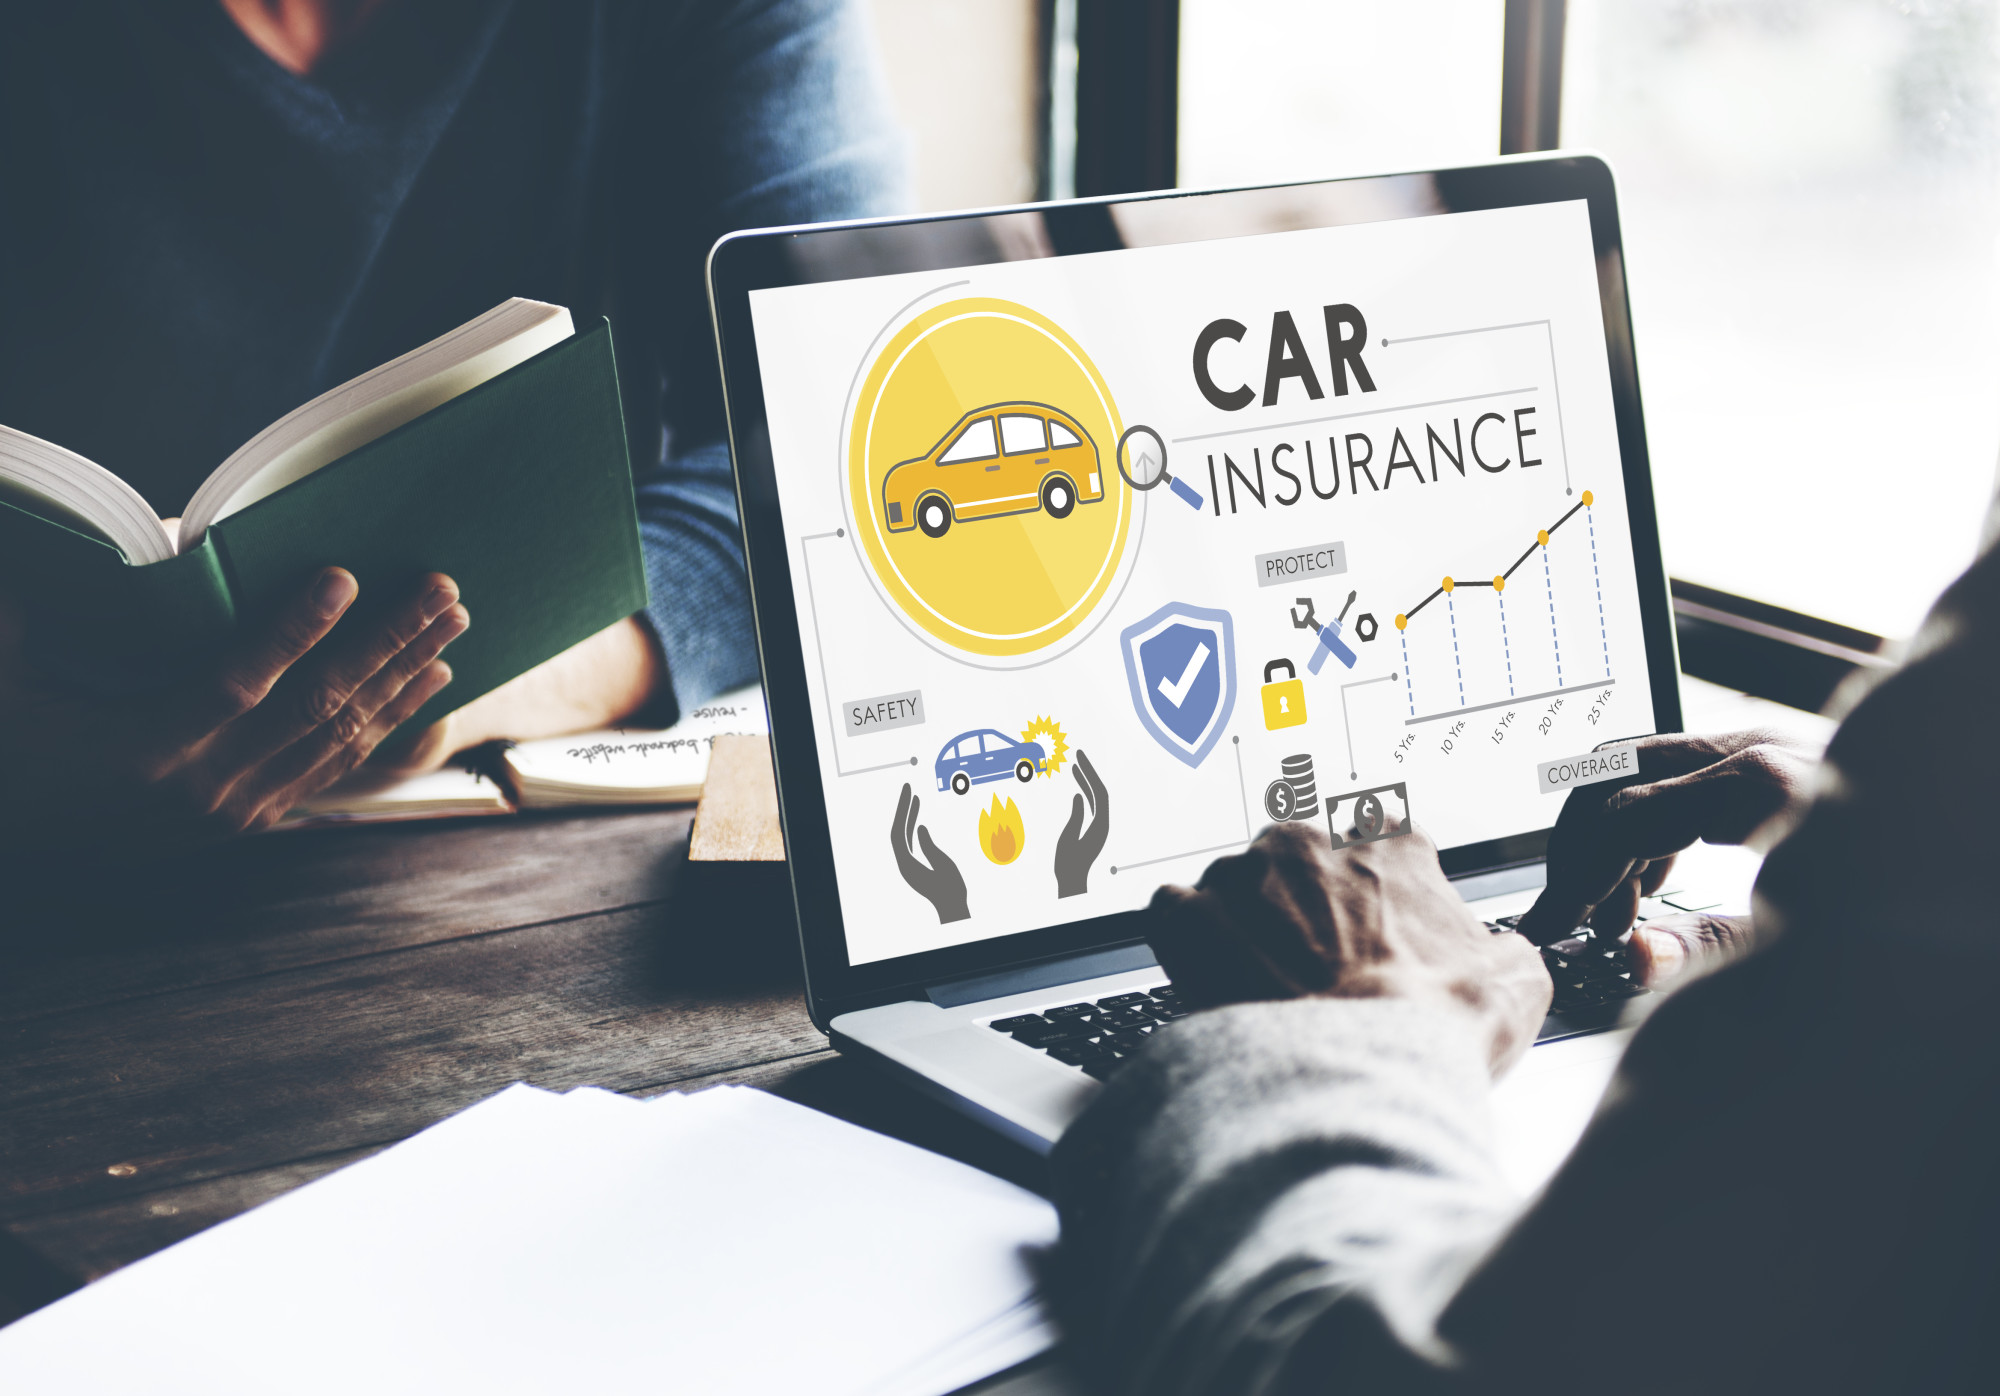 Full Coverage or Liability Car Insurance